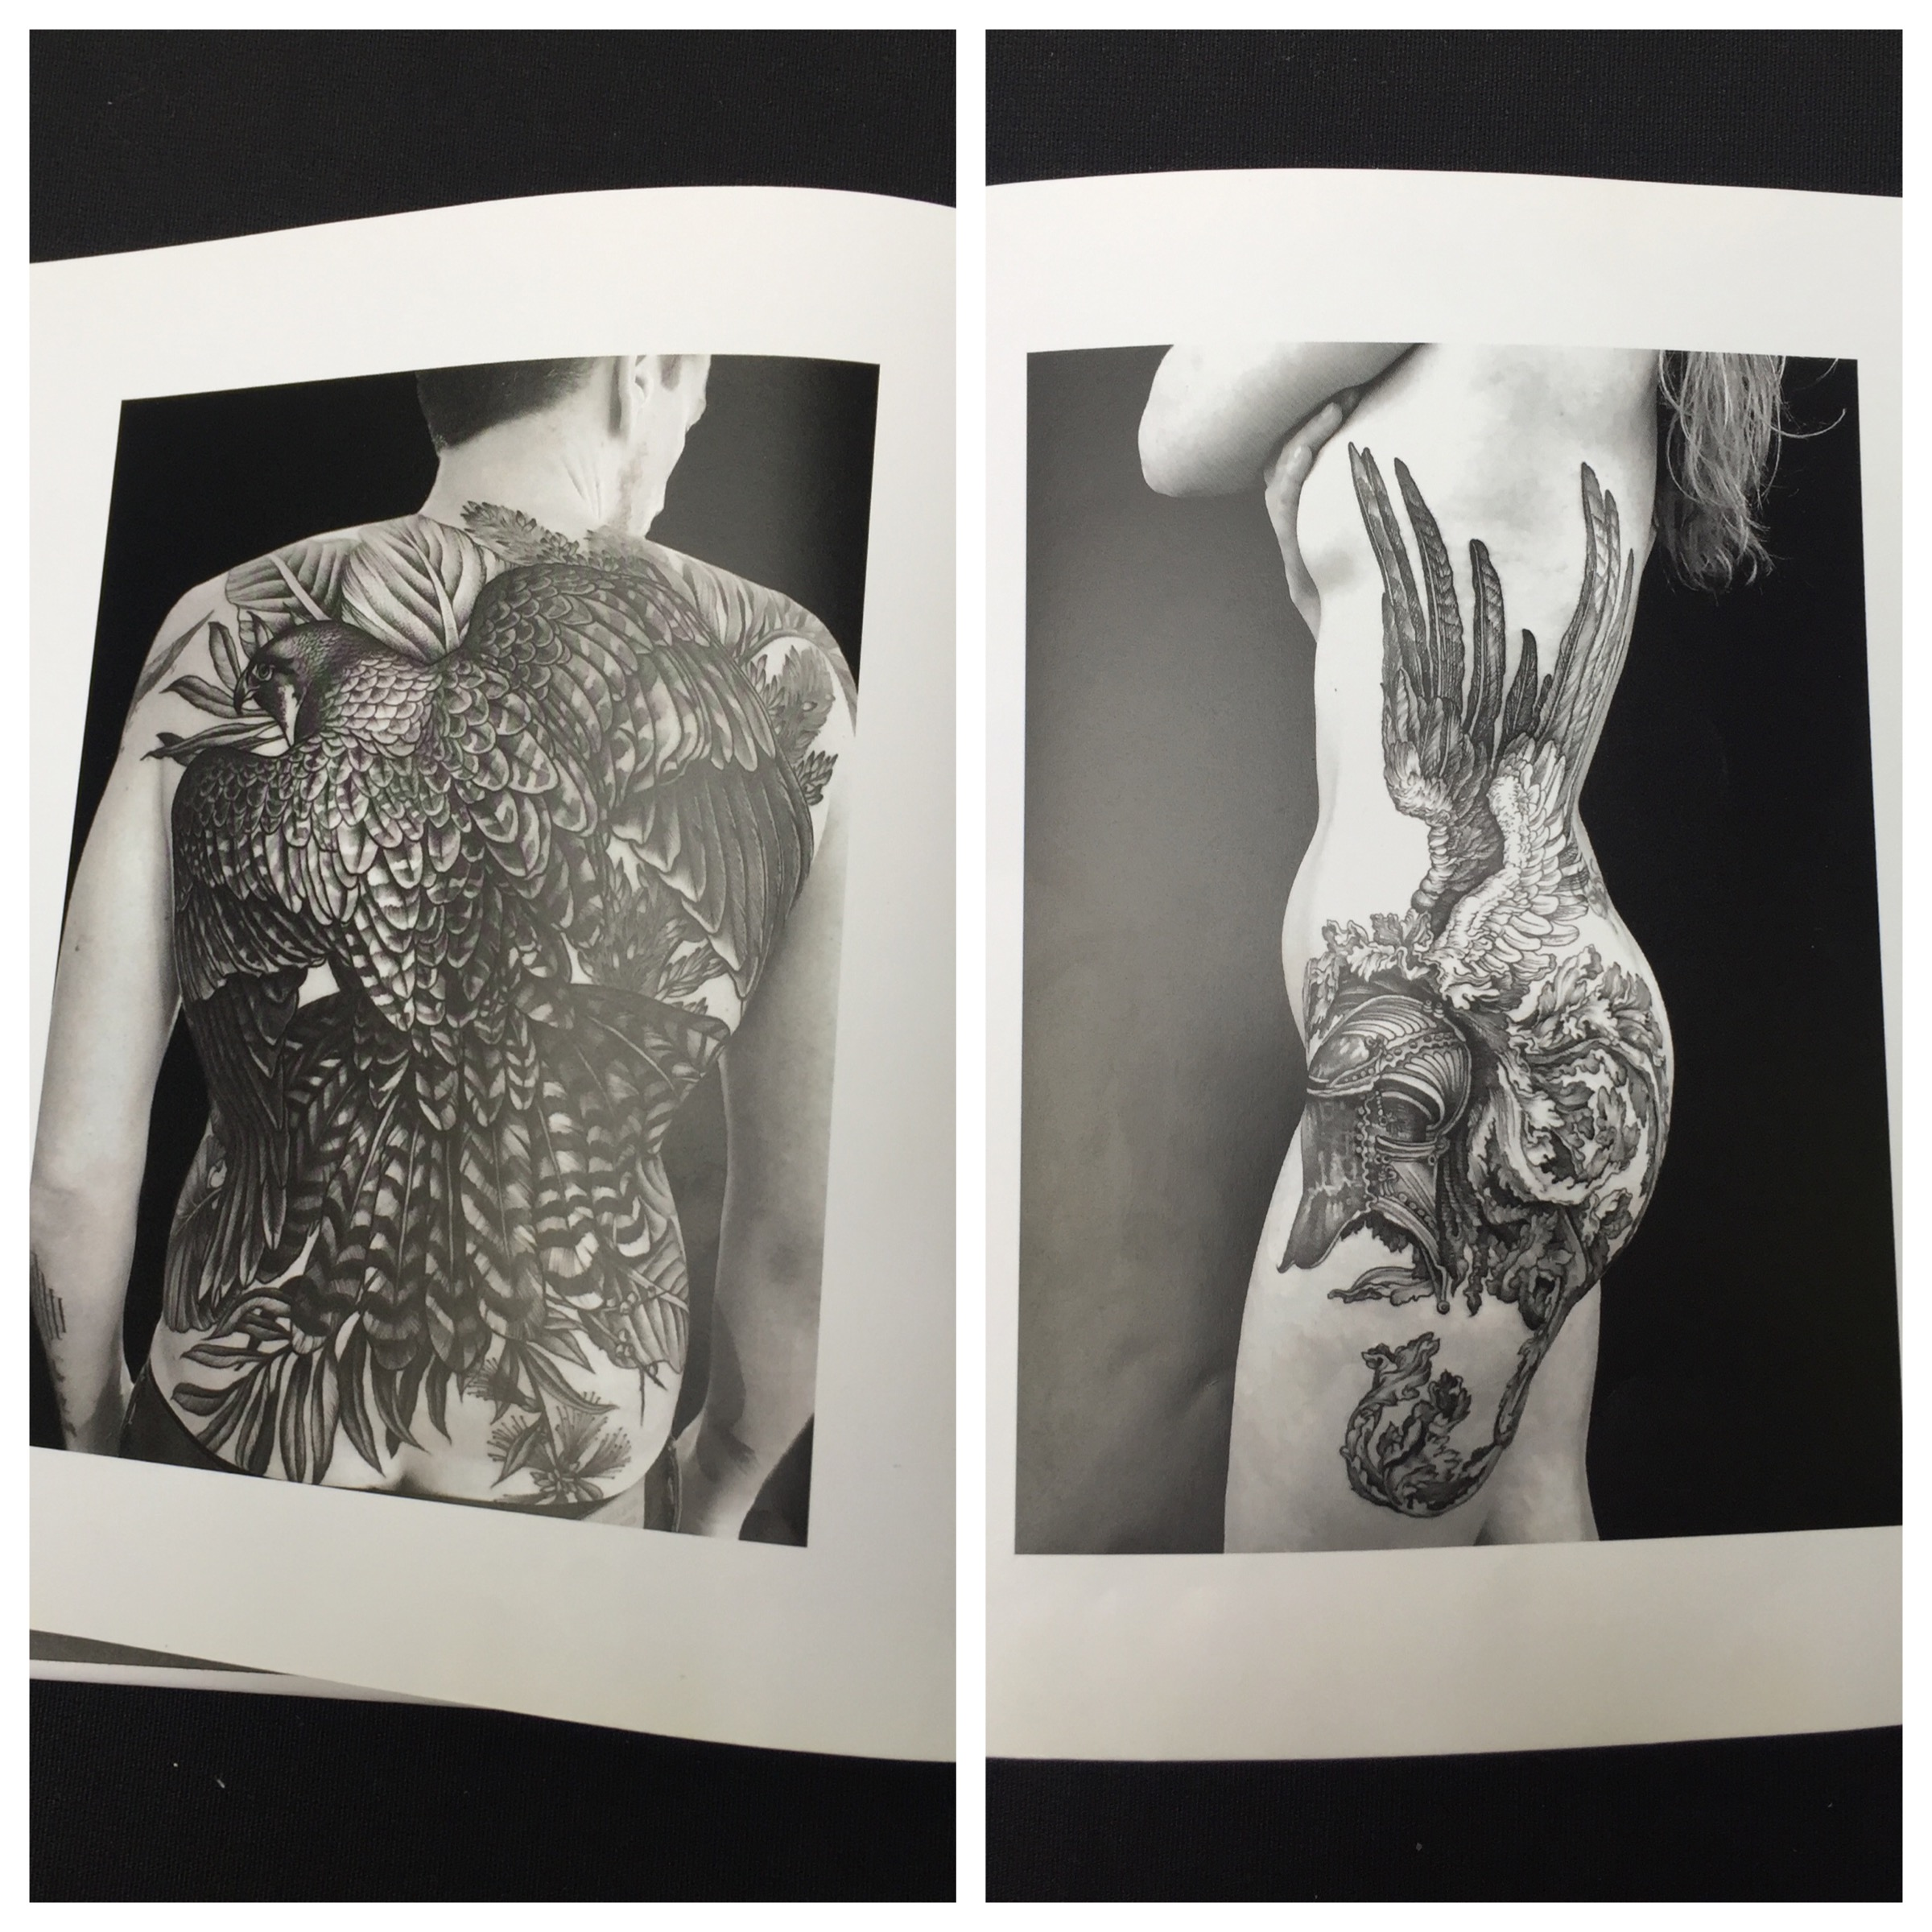 - My favourite artist was Maud Dardeau who started her career as a painter and then applied her art to tattoos. She only uses black ink and the book of her pieces demonstrated much poetry and tenderness. She is inspired by masters such as Gustave Dore and Albrecht Durer.